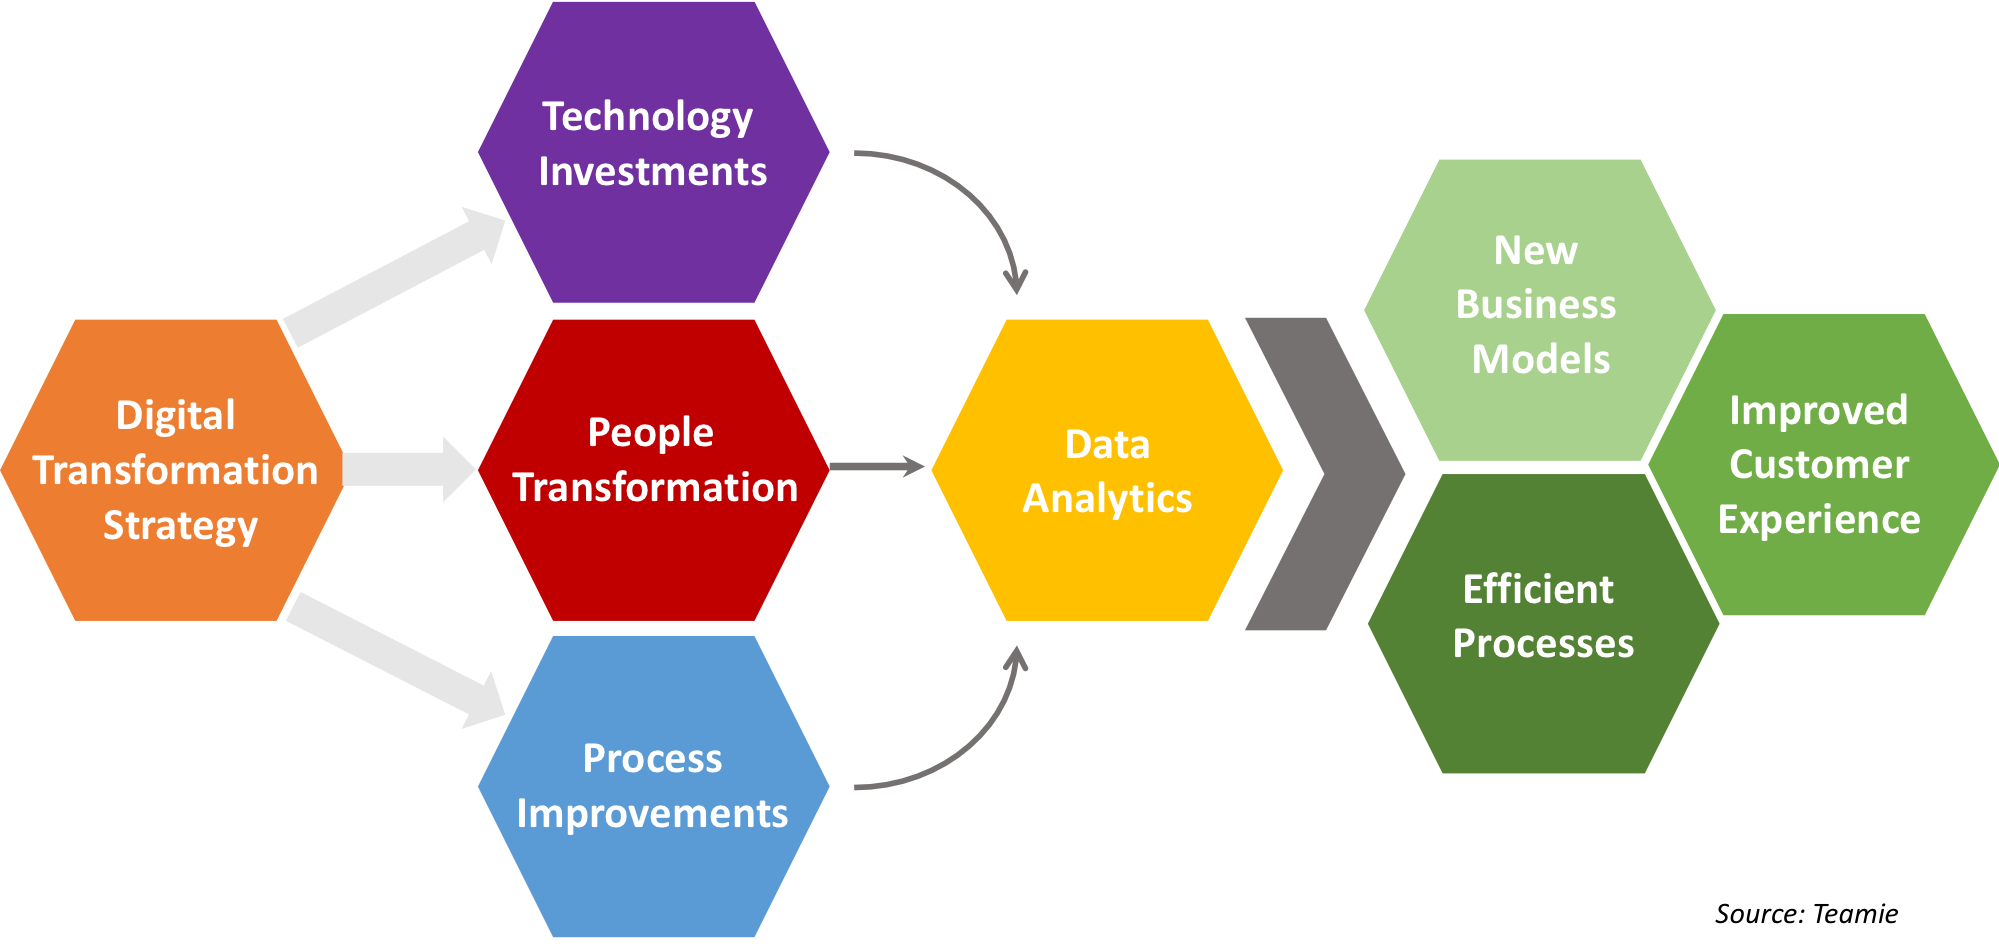 Digital Transformation Building Blocks and Outcomes